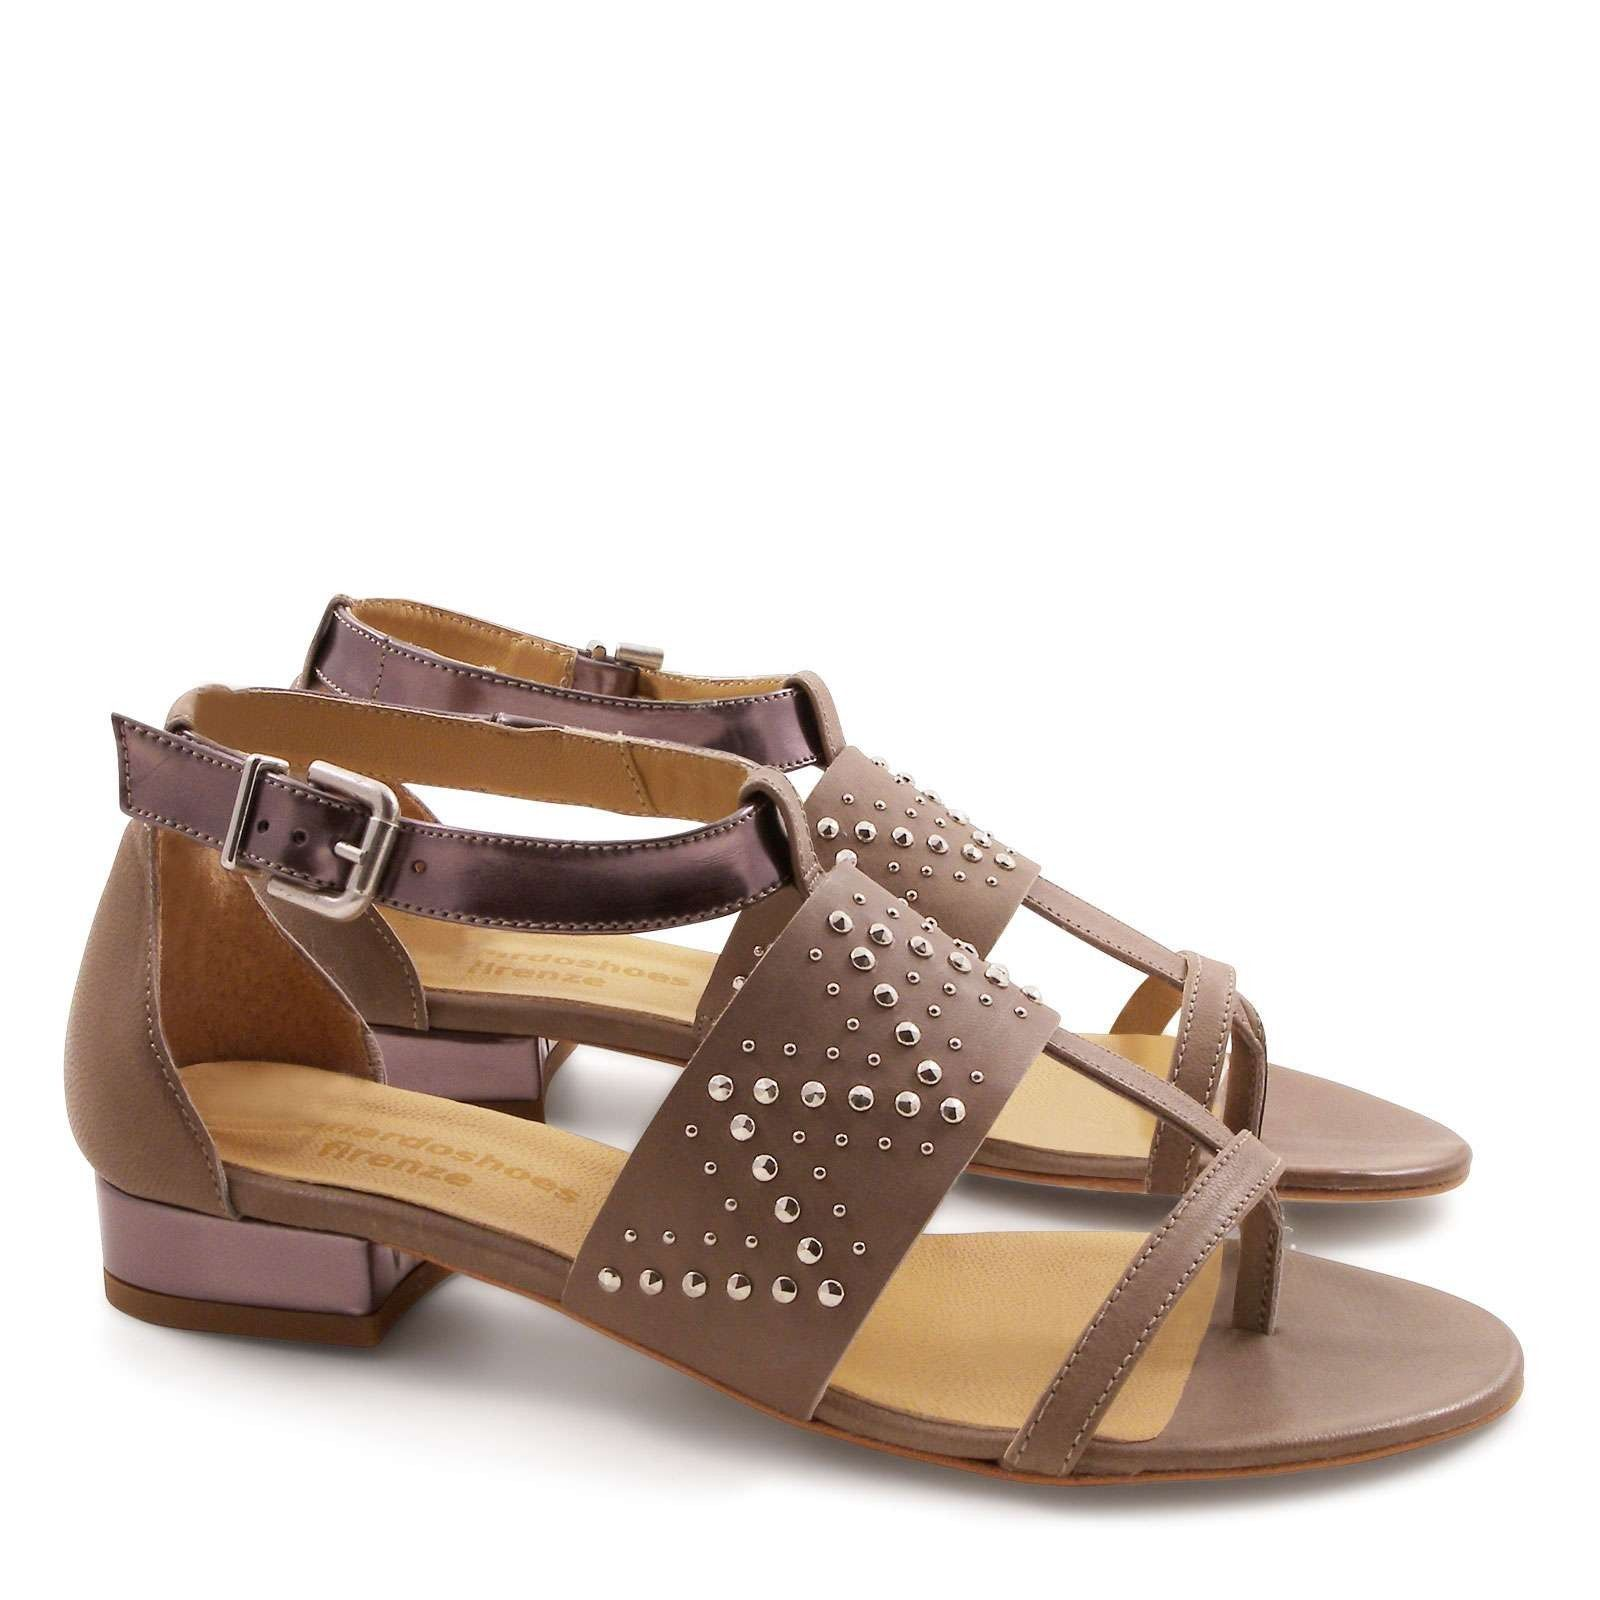 Strappy low heels sandals in mink leather | Mink, Leather and Italian